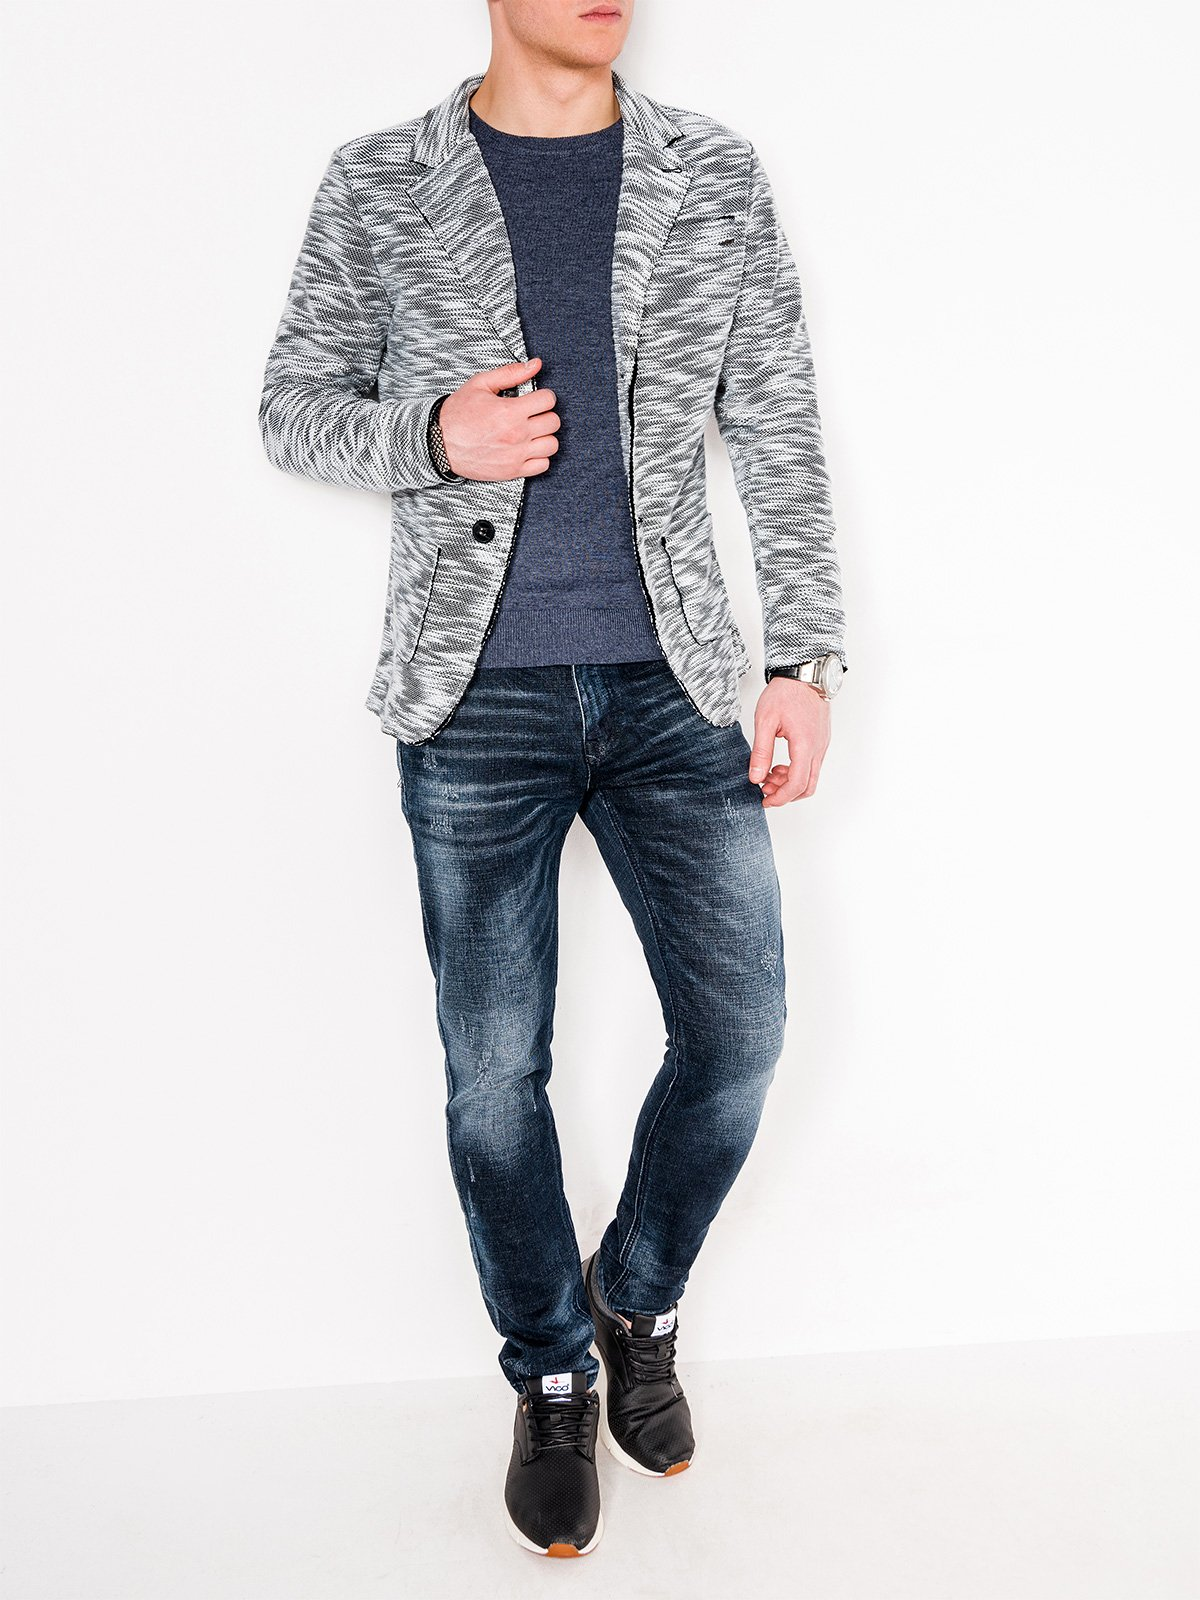 Ombre Clothing Men's casual blazer jacket M89